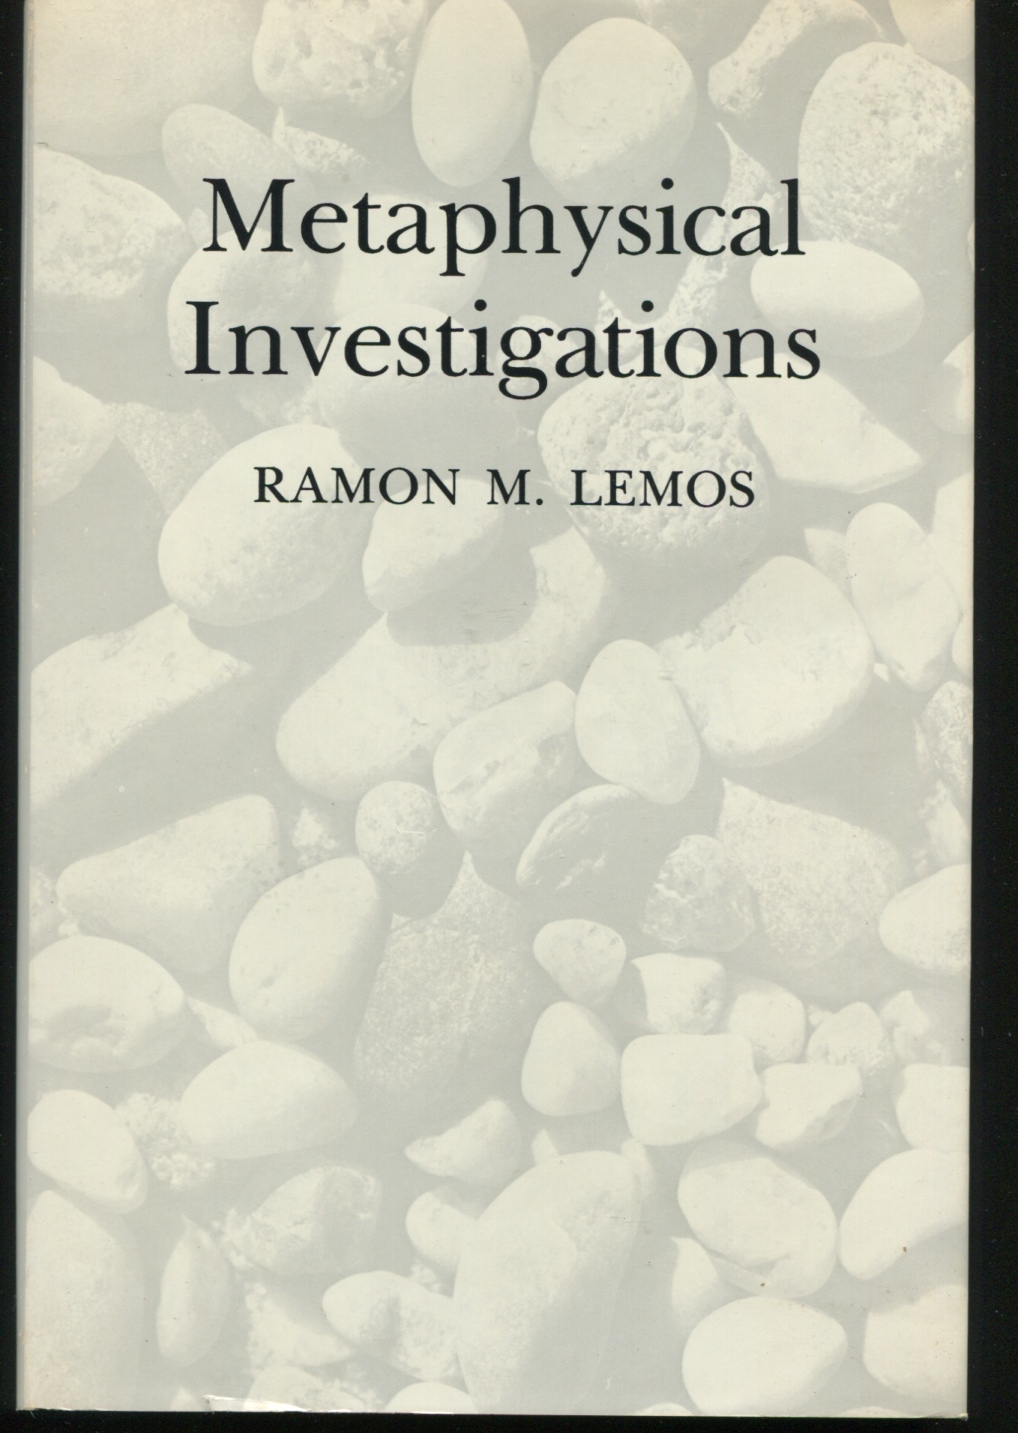 Metaphysical Investigations.